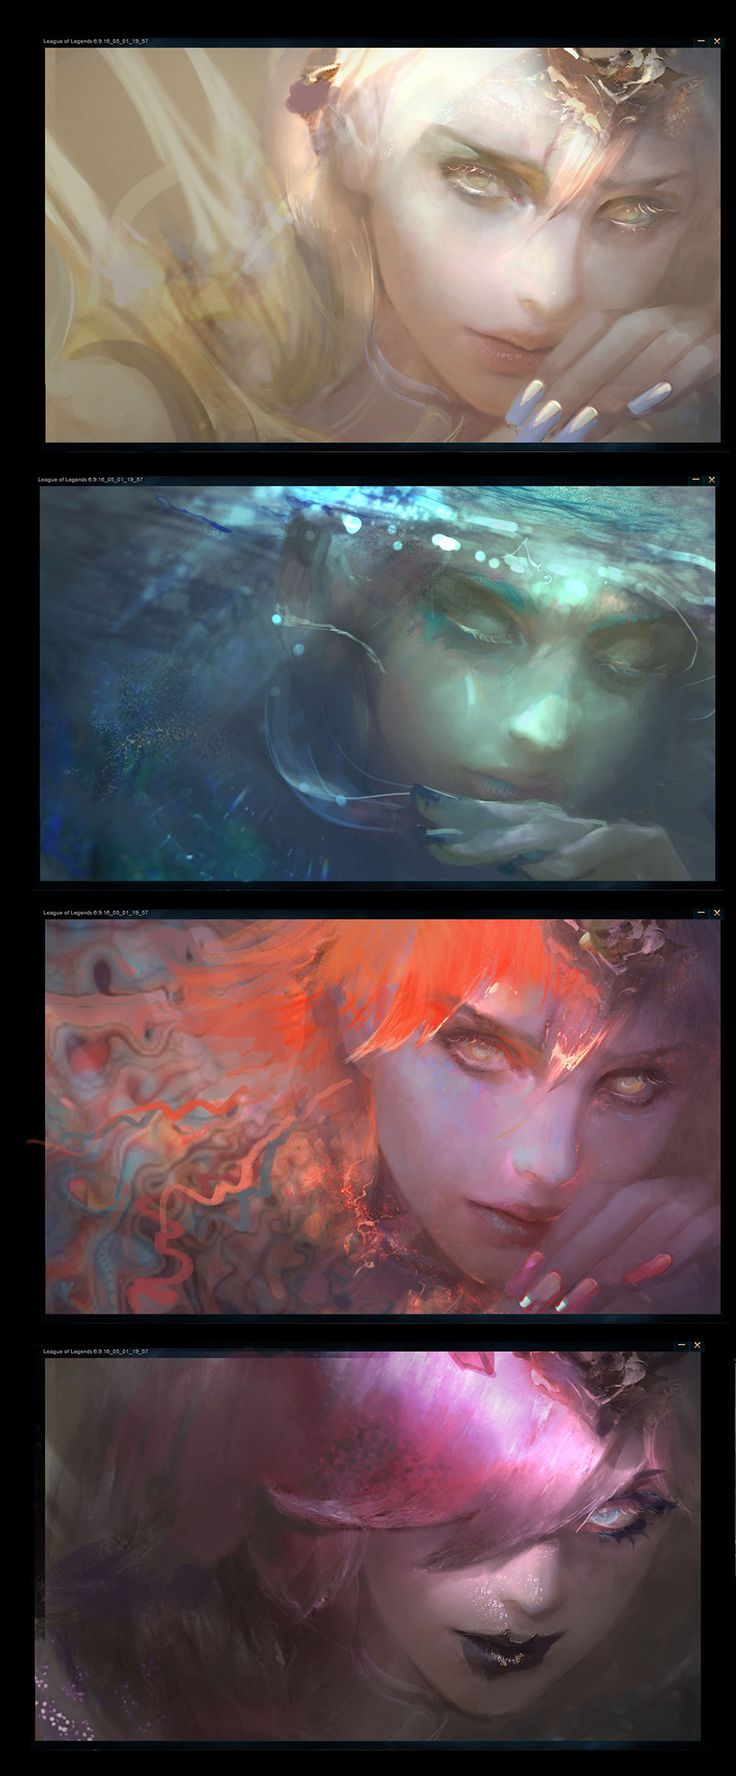 Did these for League of Legends ultra skin Elementalist Lux, these are promo arts + Login screen design WIPs.  Thanks for awesome mograph artists Adam Oliver and Timothy Weiser, they created my favorite Login screen ever!  Check it out:   https://youtu.be/WmpNDXxNpu4  This skin includes 10 forms, the goal of the promo art is presenting her transformation between different forms. PS: Paul Kwon who is the concept artist designed the beautiful skins.